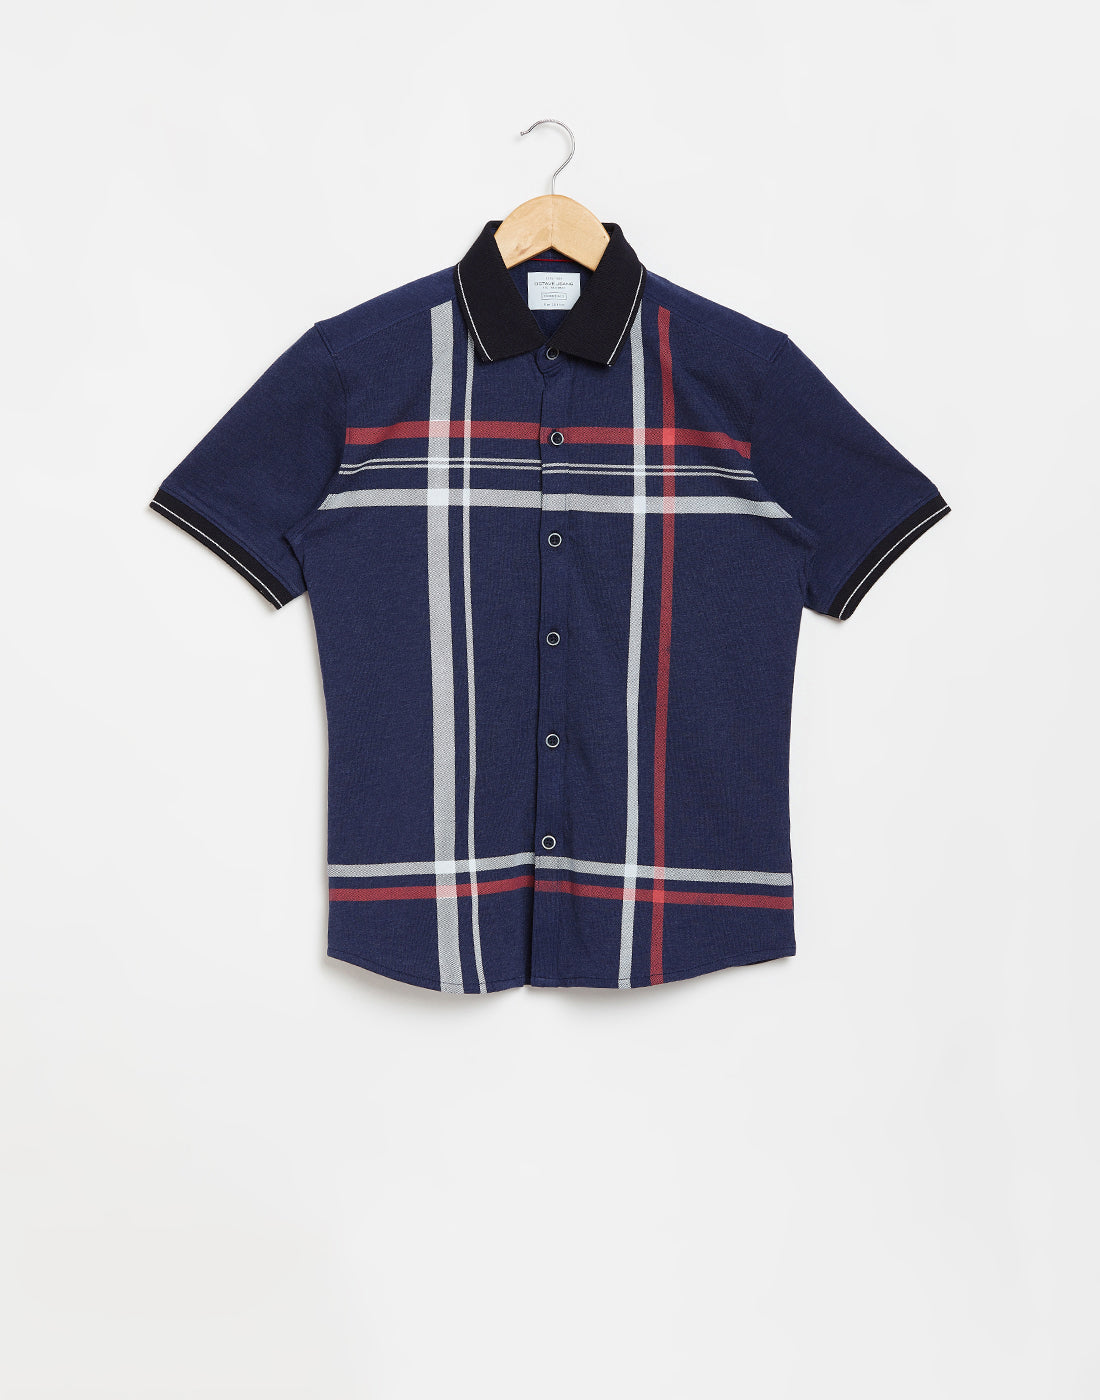 Octave Boys Navy Melange Printed Casual Shirt